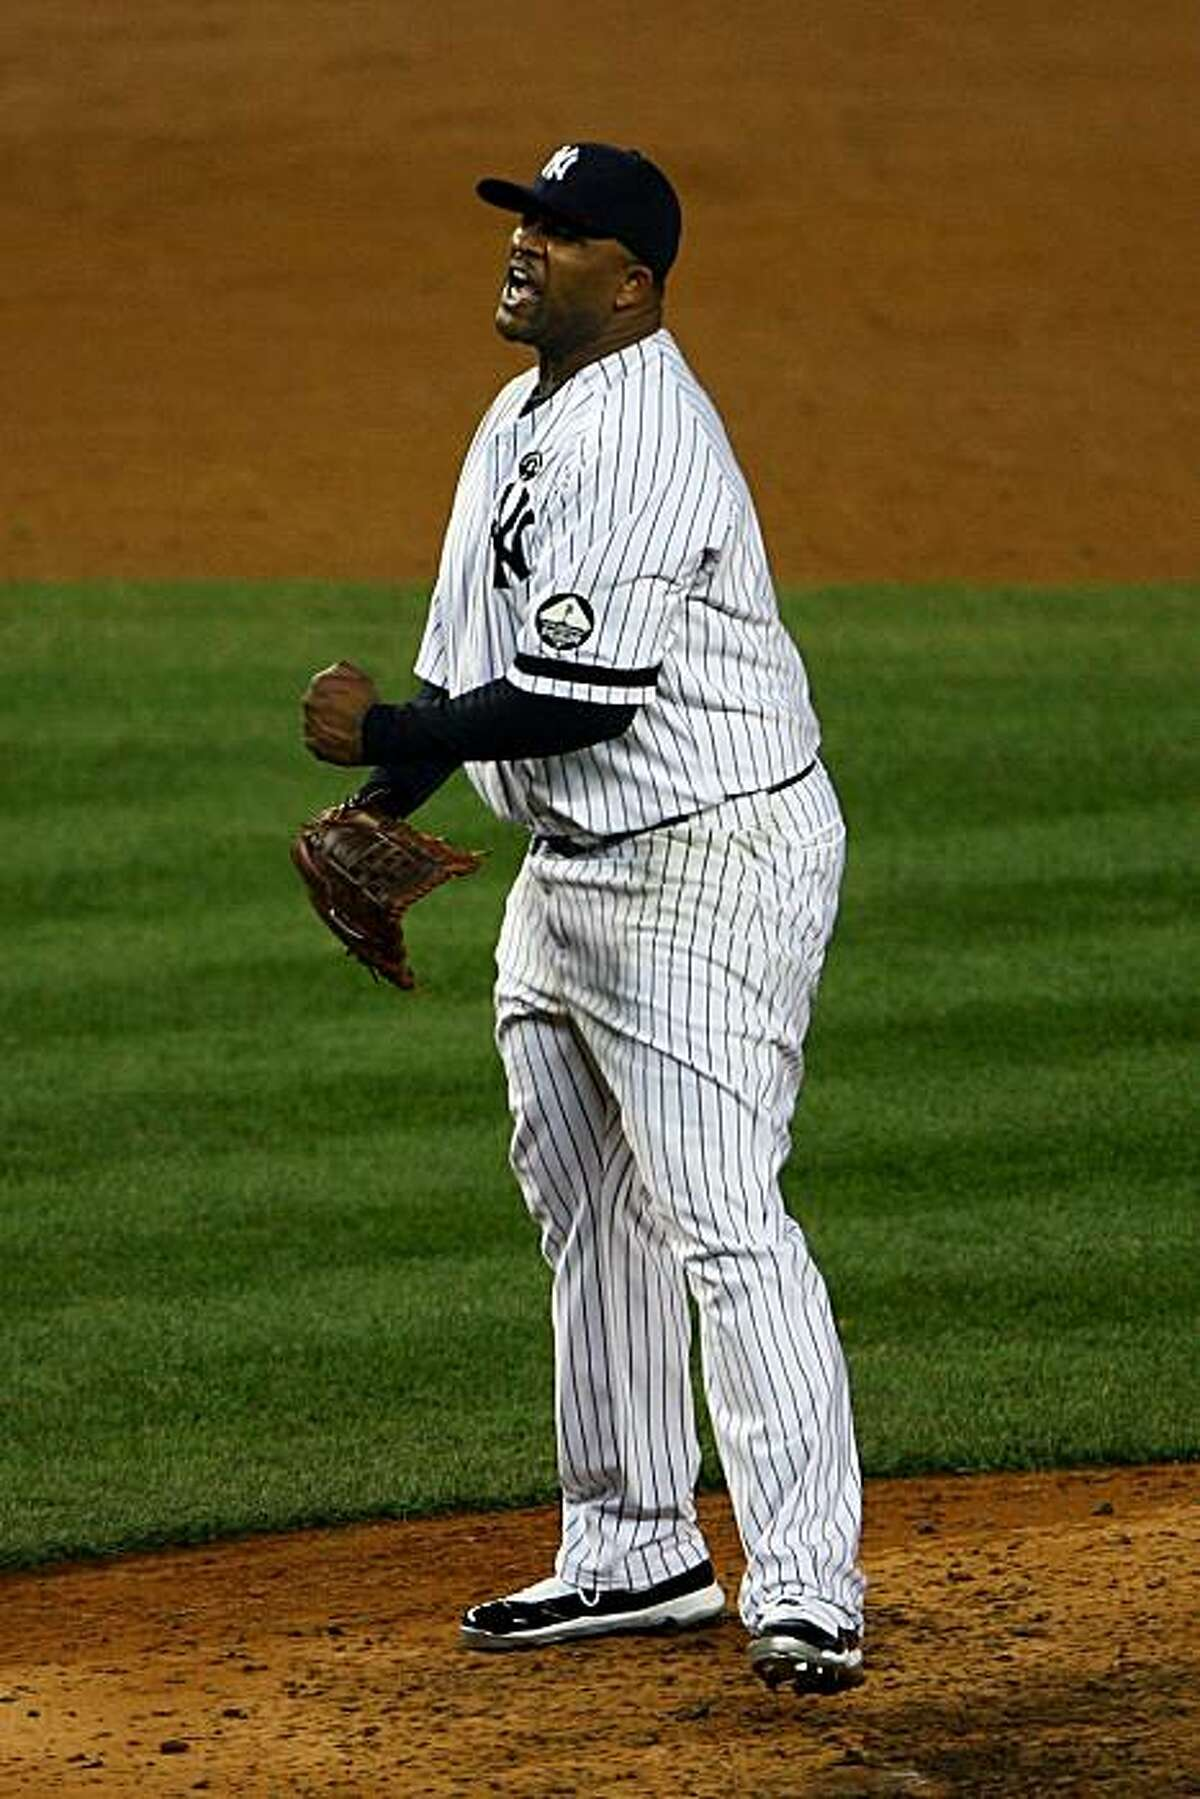 NEW YORK - OCTOBER 20: CC Sabathia #52 of the New York Yankees reacts after he struck out Mitch Moreland #18 of the Texas Rangers to end the top of the sixth inning of Game Five of the ALCS during the 2010 MLB Playoffs at Yankee Stadium on October 20, 2010 in the Bronx borough of New York City.